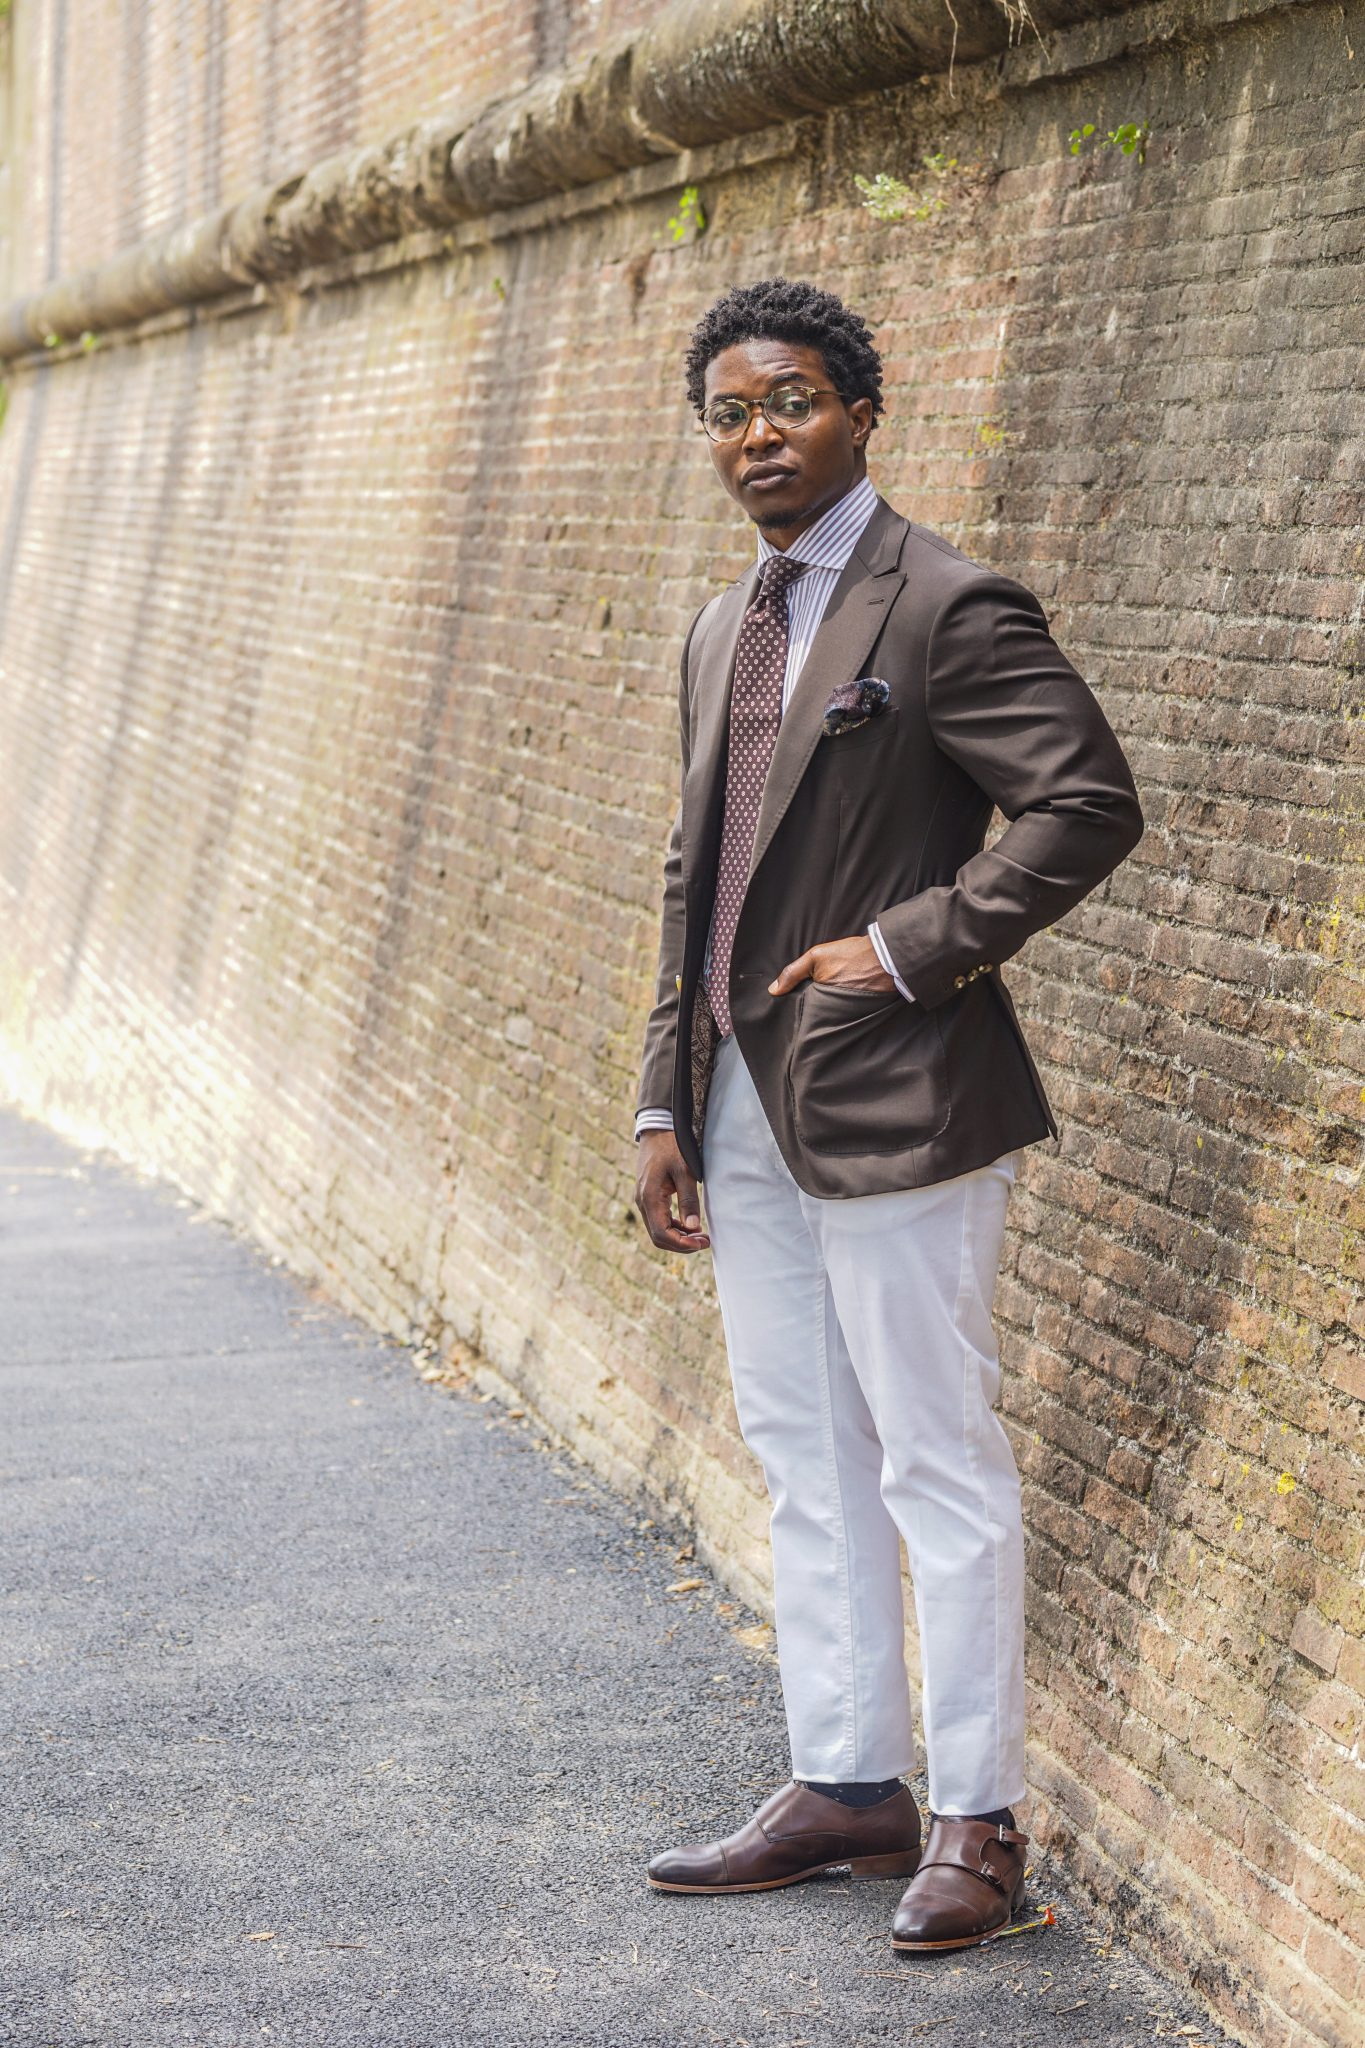 Pitti Uomo 92: What I Wore On Day 2